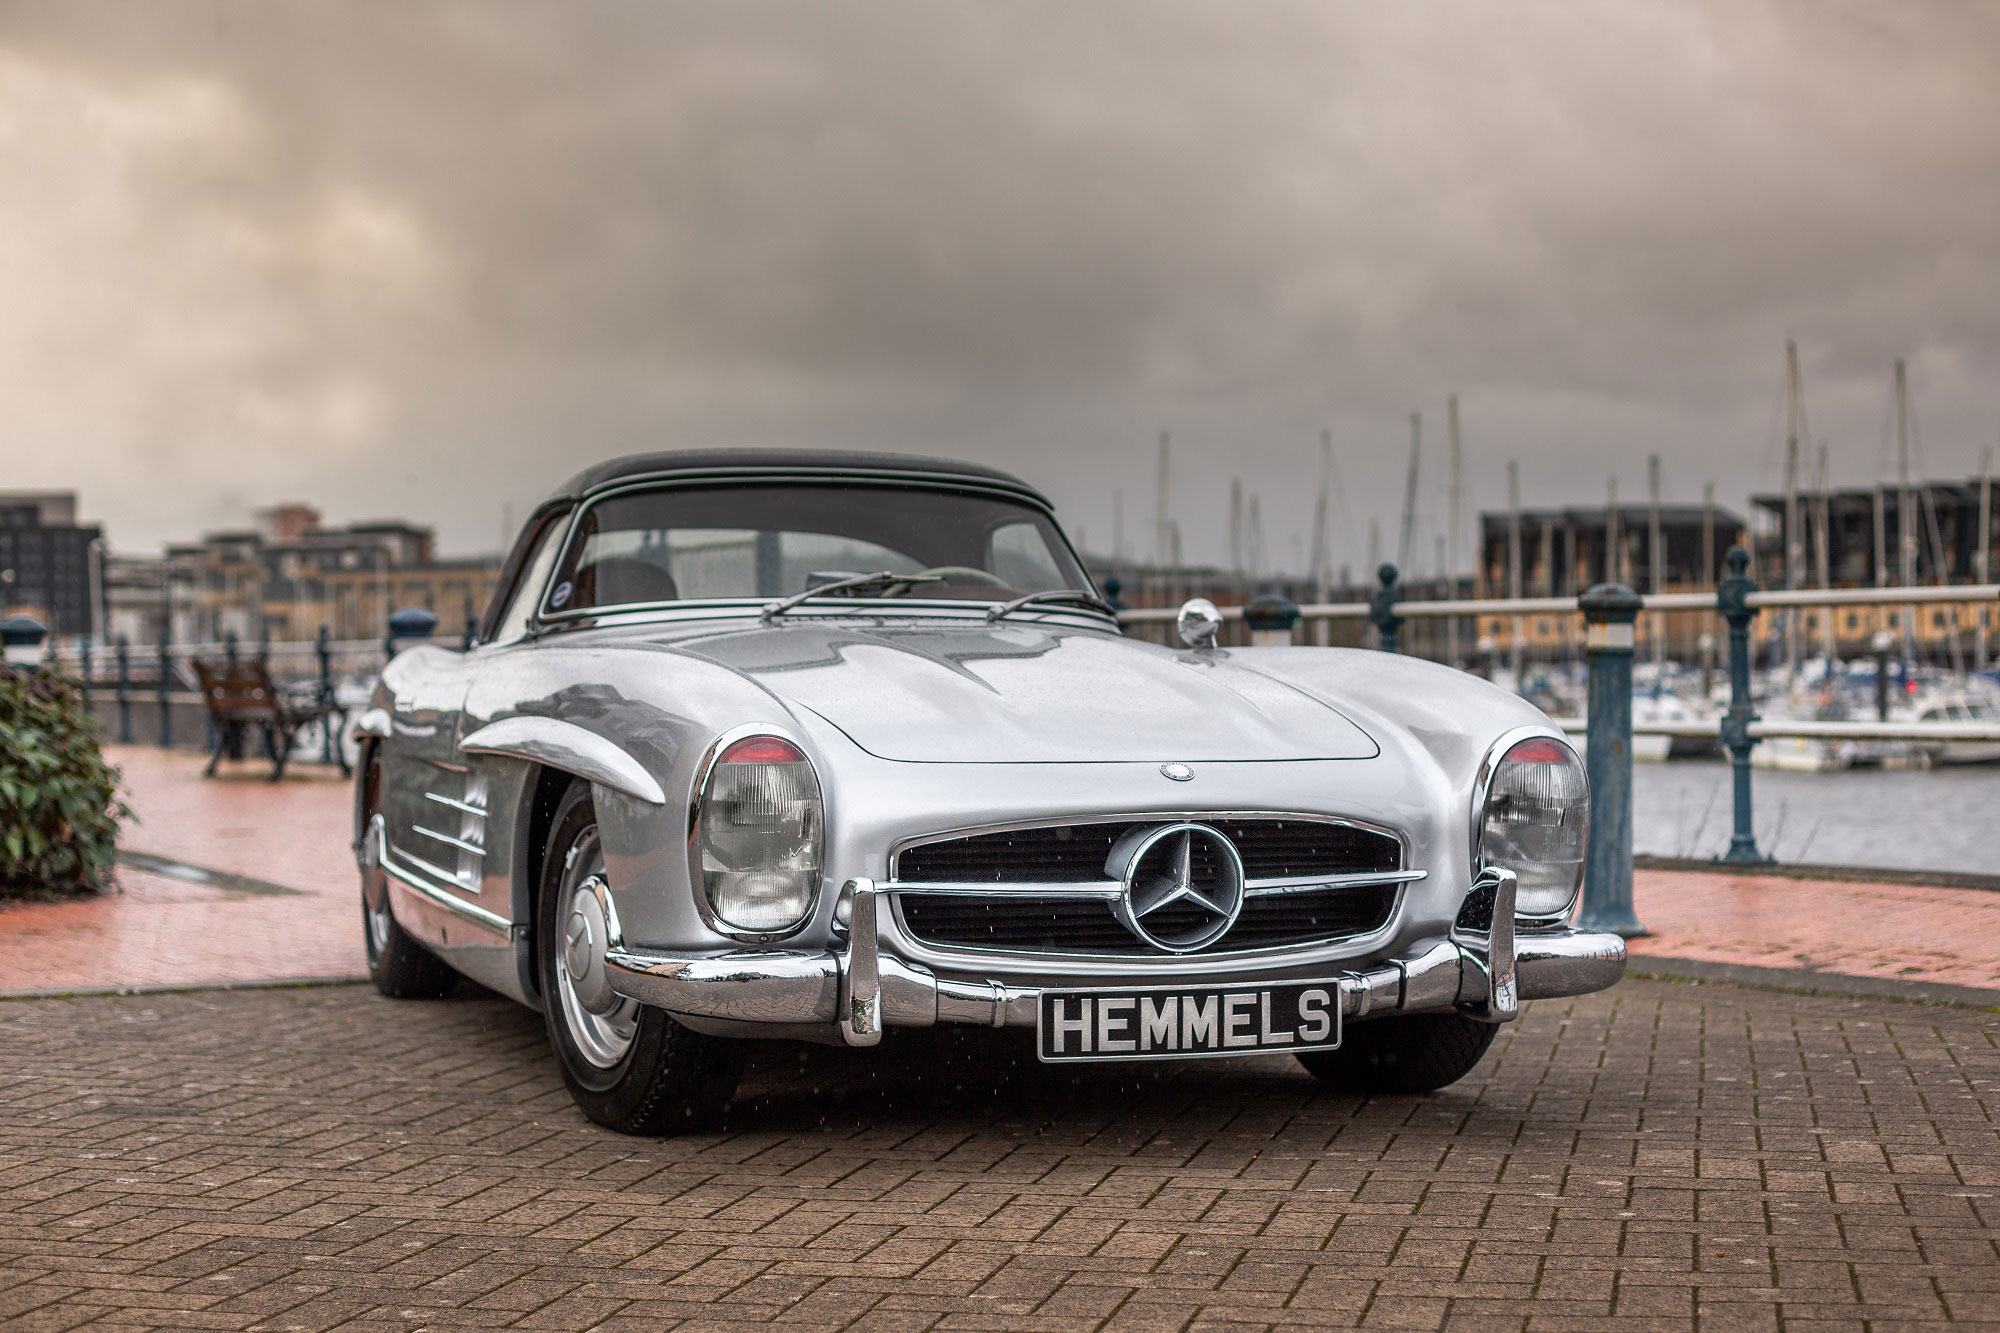 Mercedes Benz 300SL Gullwing Roadster For Sale USA